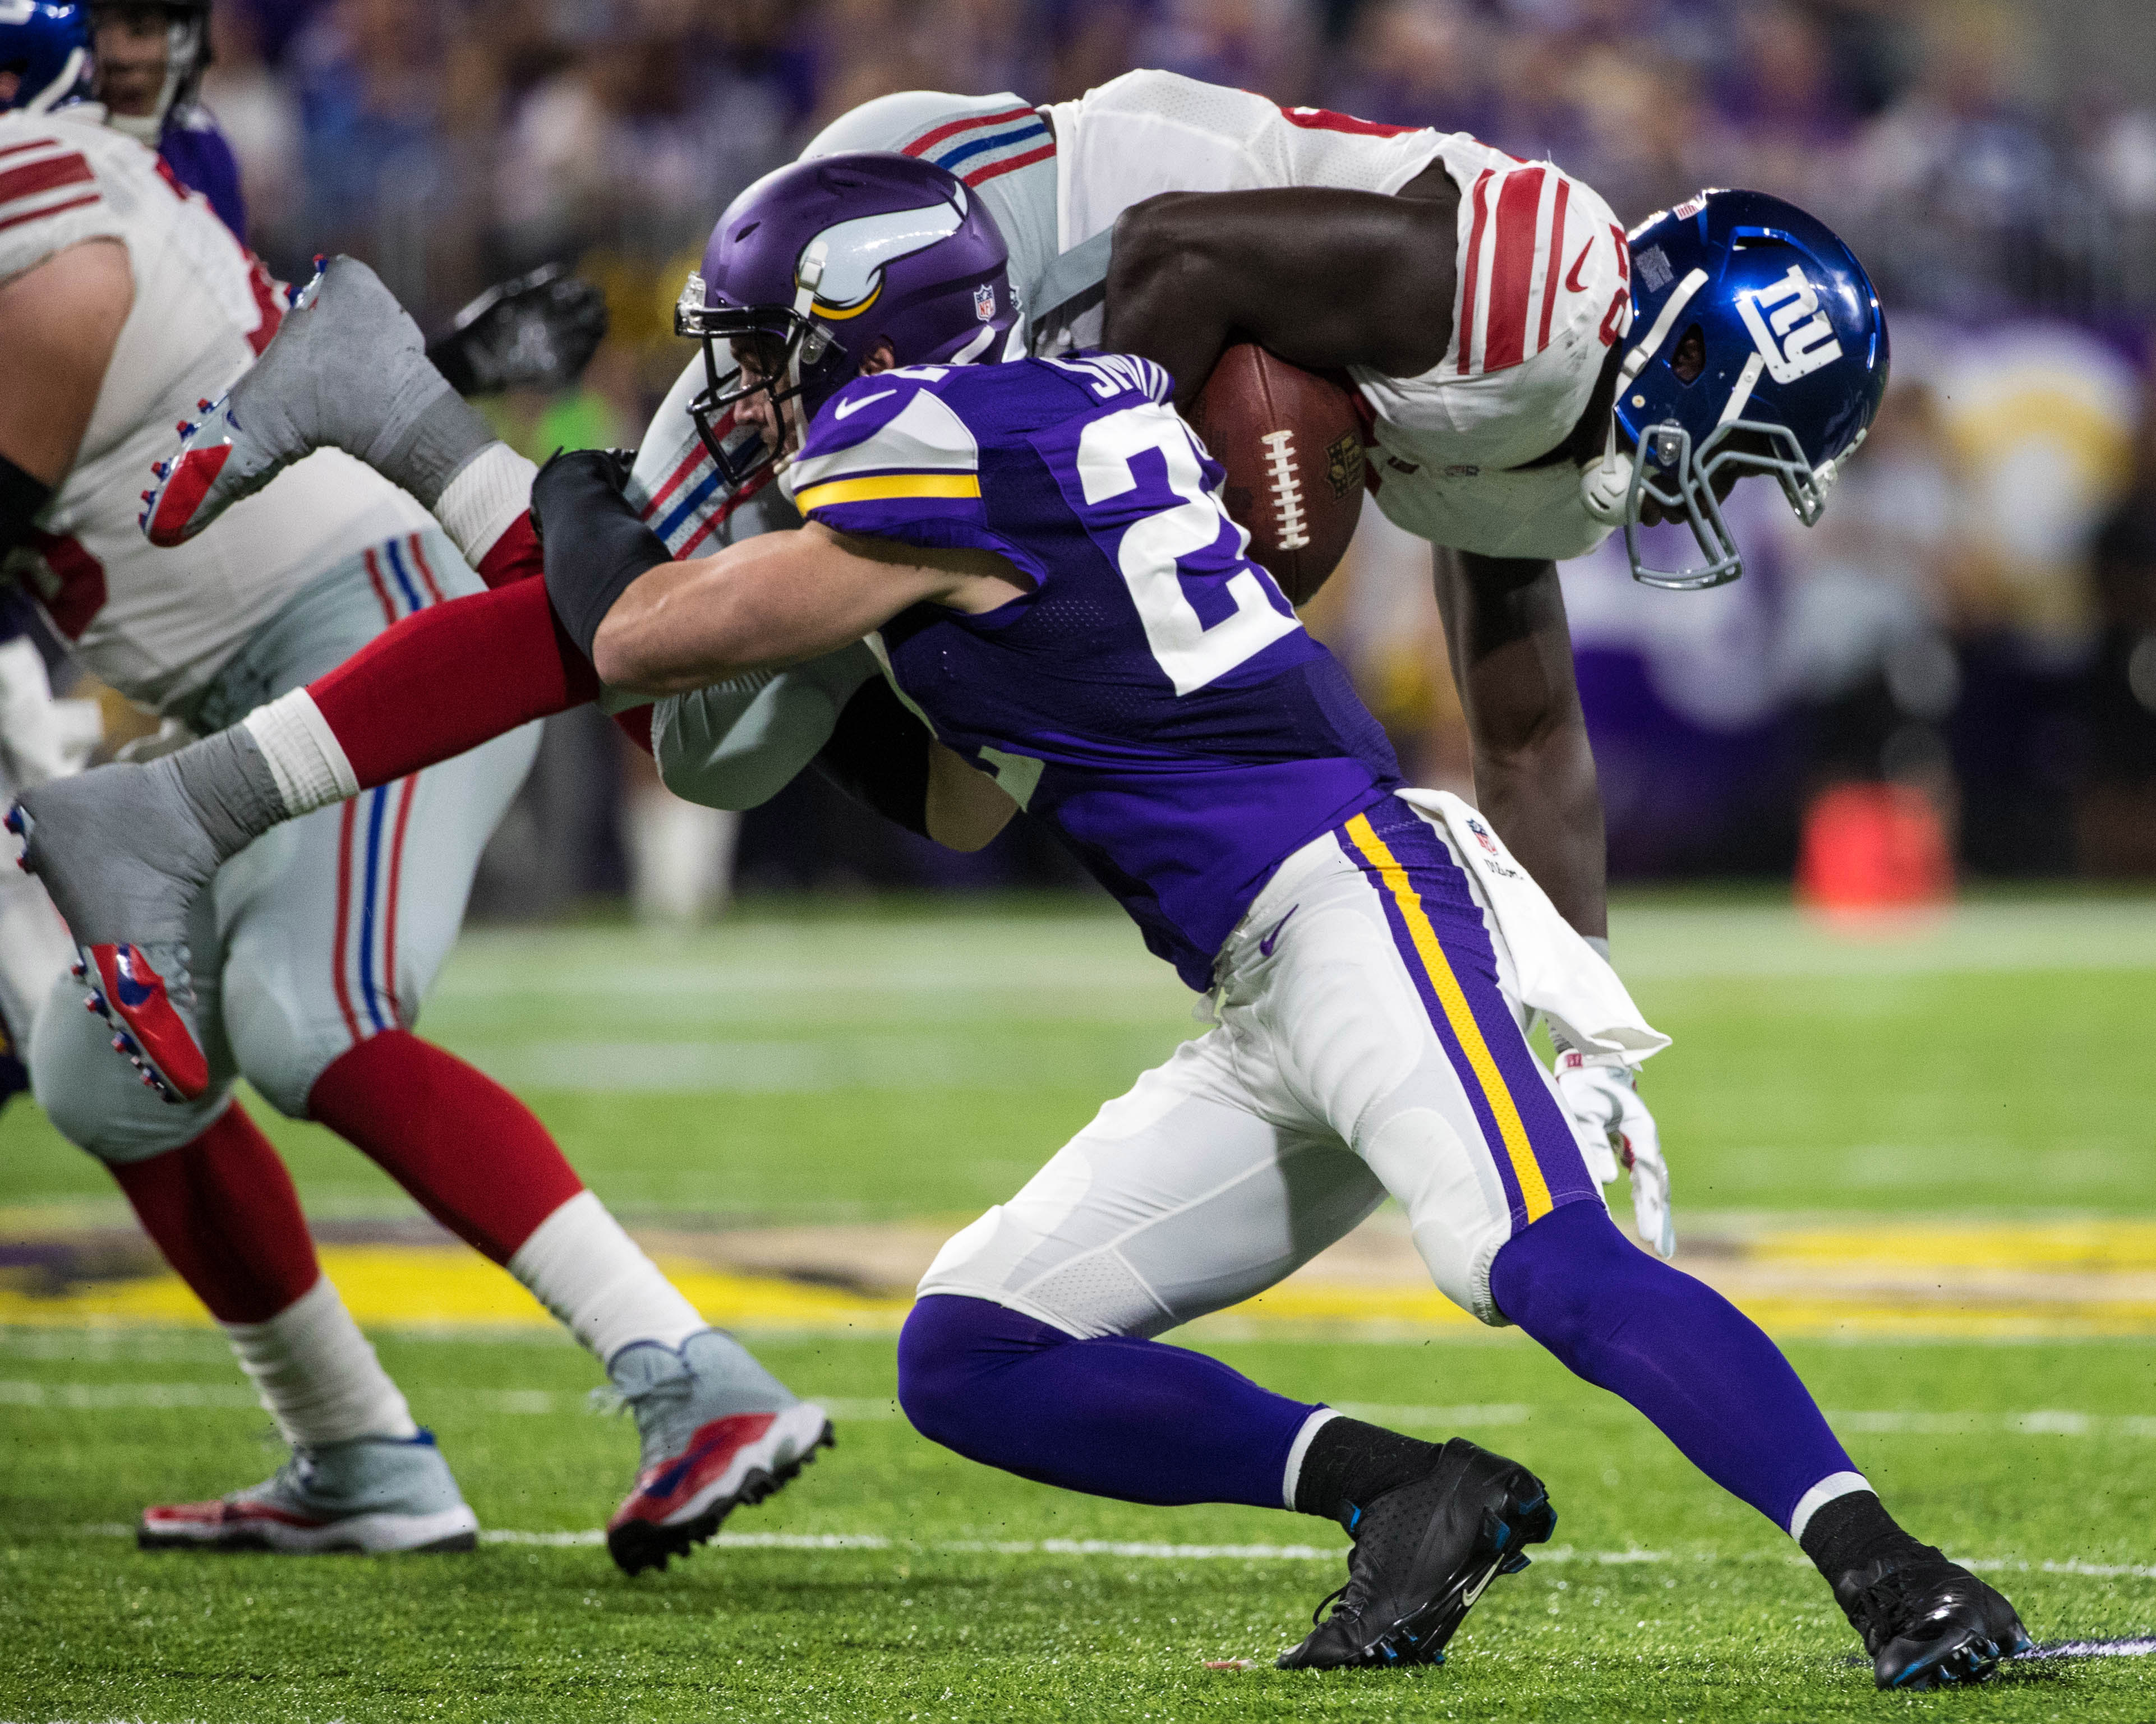 Harrison Smith earning that extension